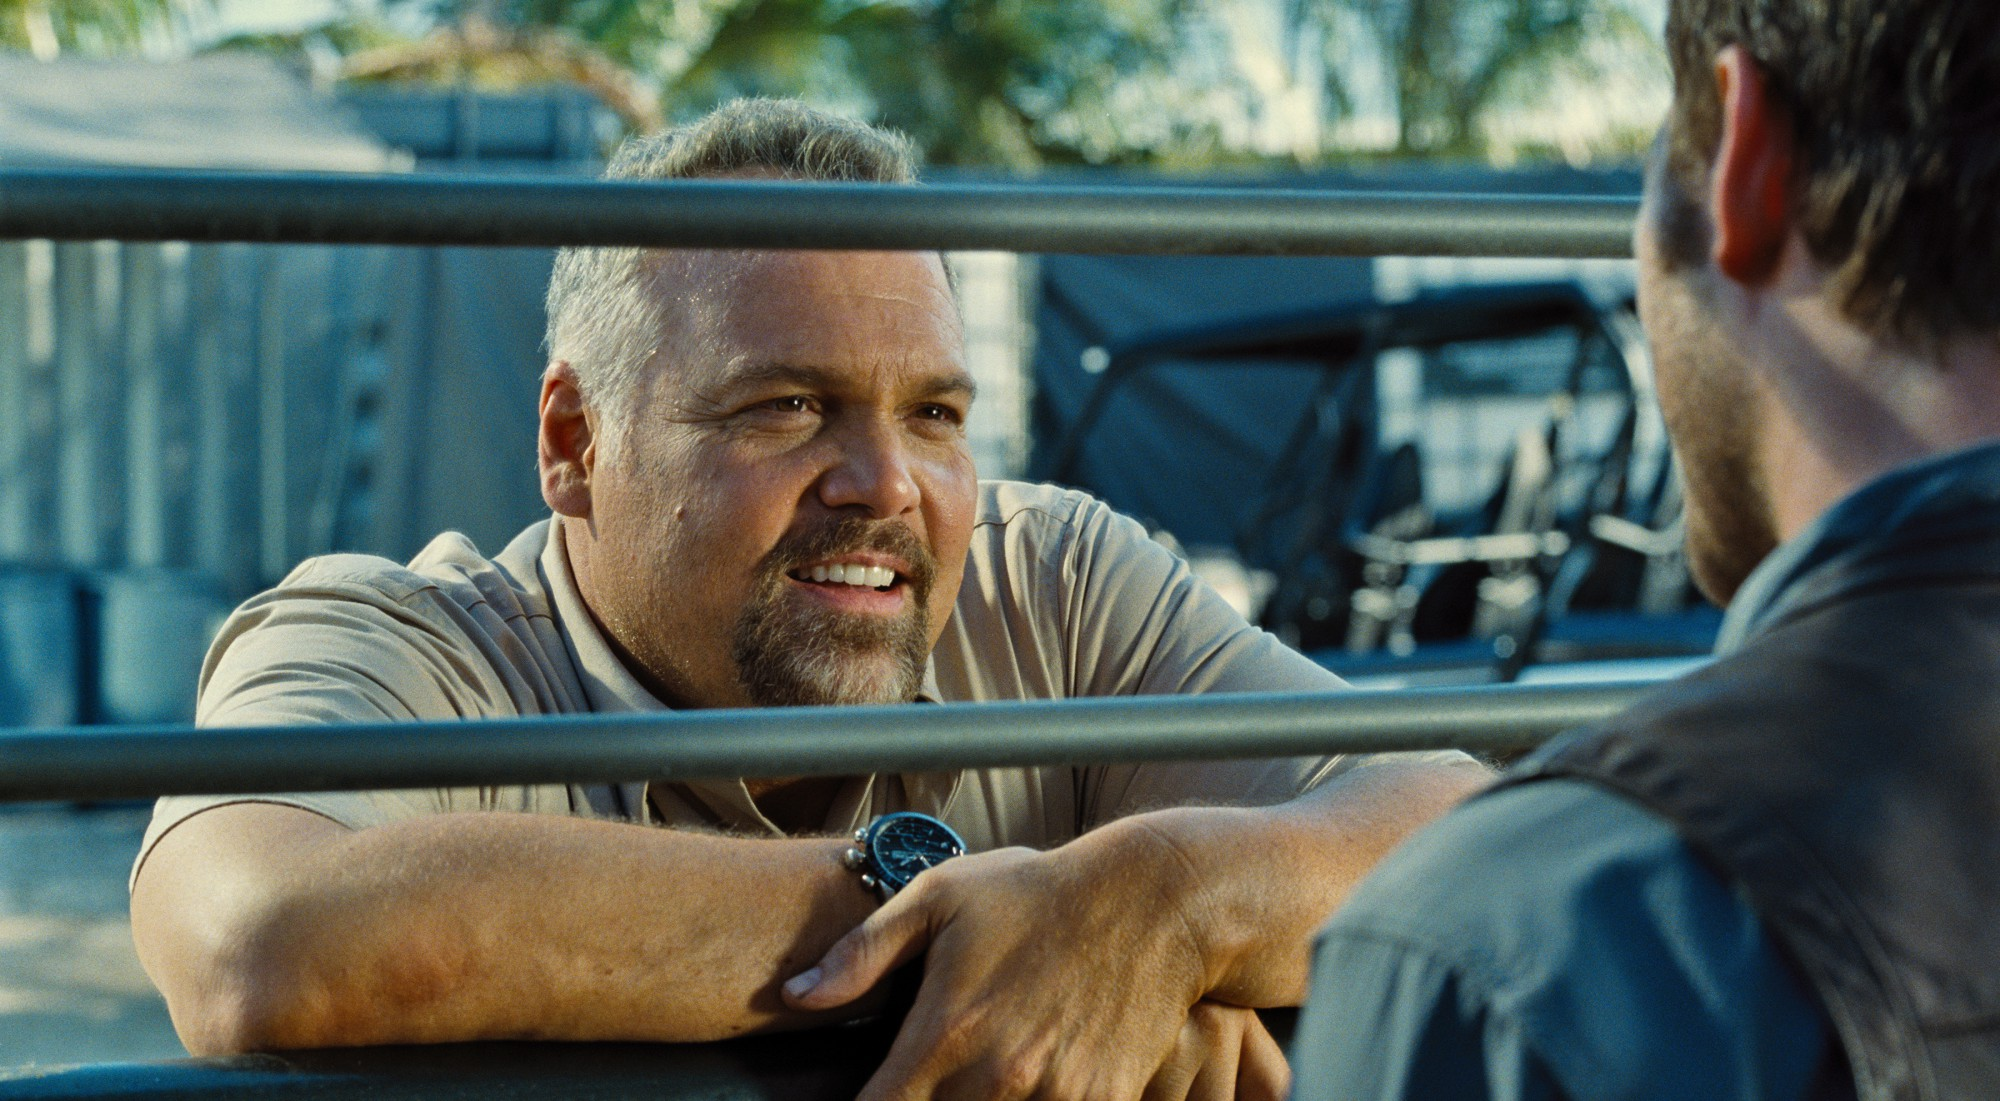 Jurassic World - Vincent D'Onofrio as Vic Hoskins